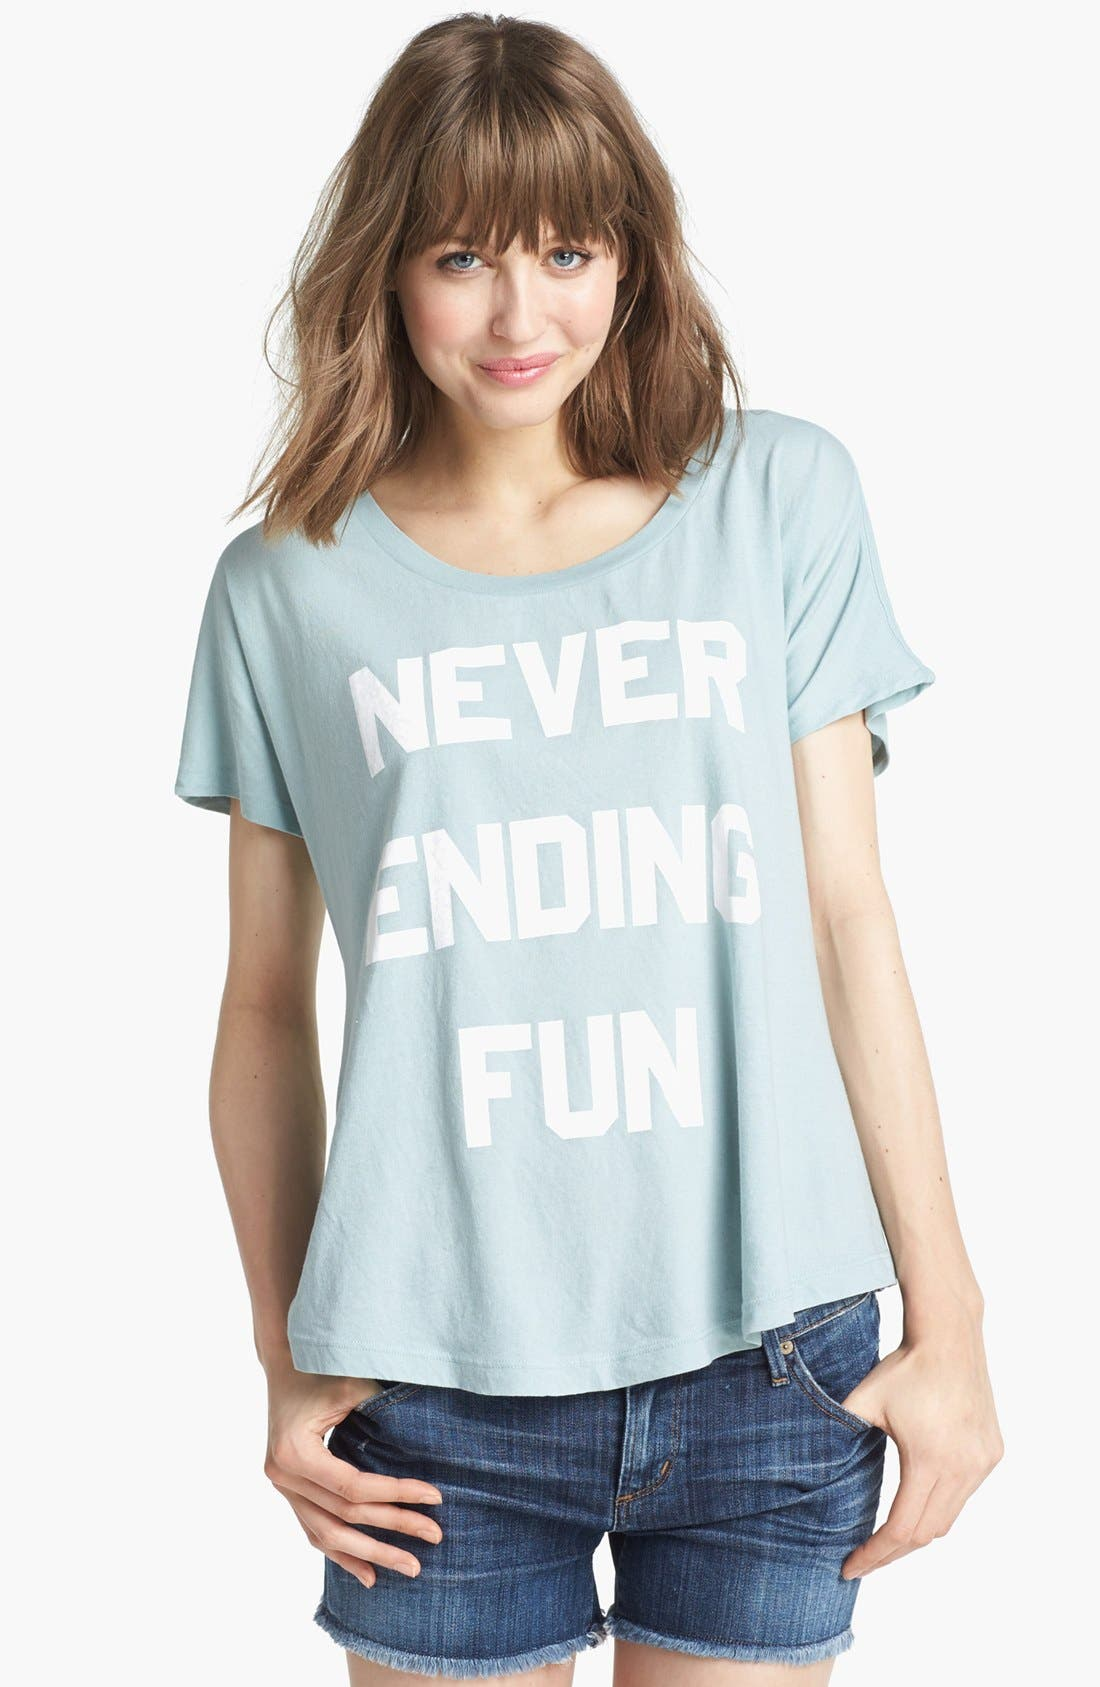 Main Image - Wildfox 'Never Ending Fun' Tee